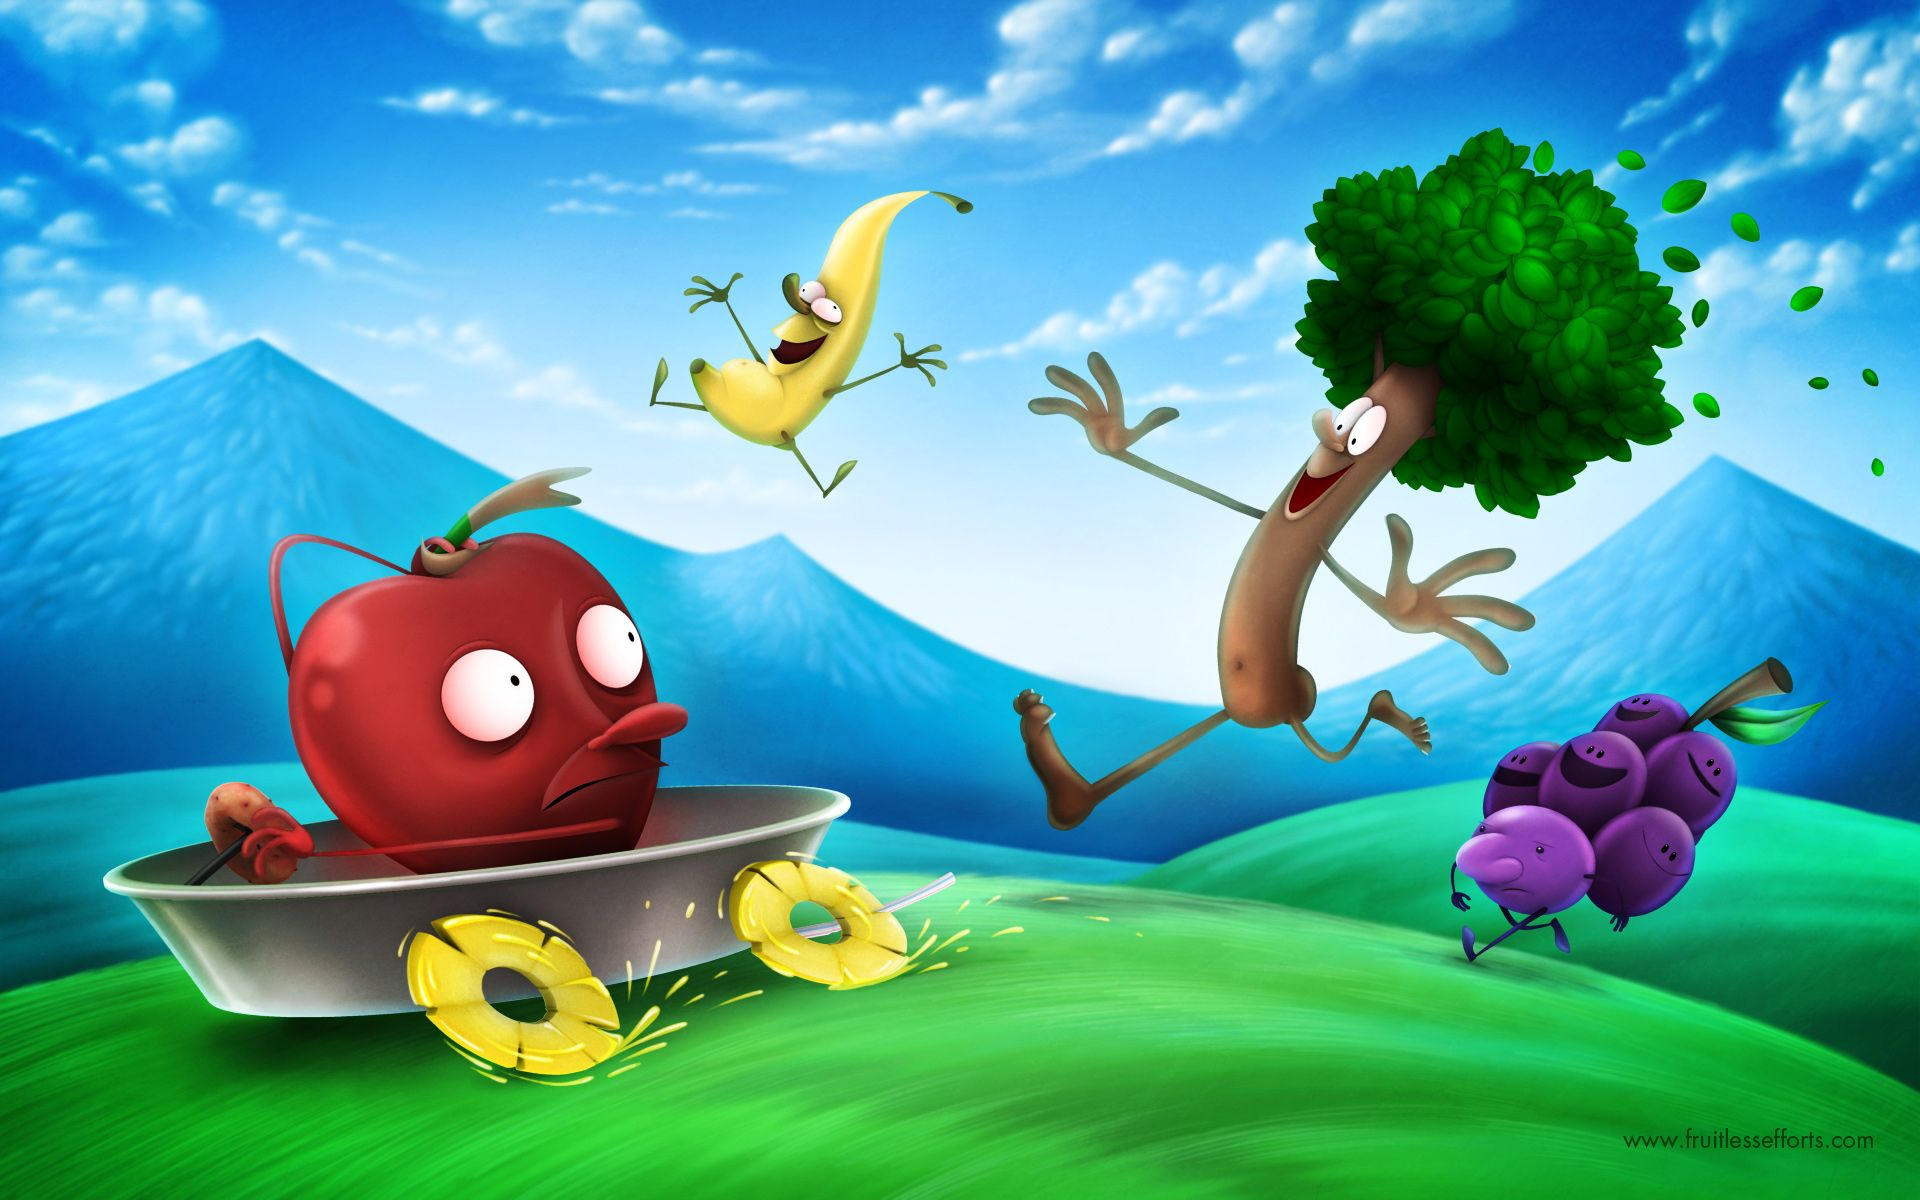 Animated Wallpaper : Find best latest Animated Wallpaper ...